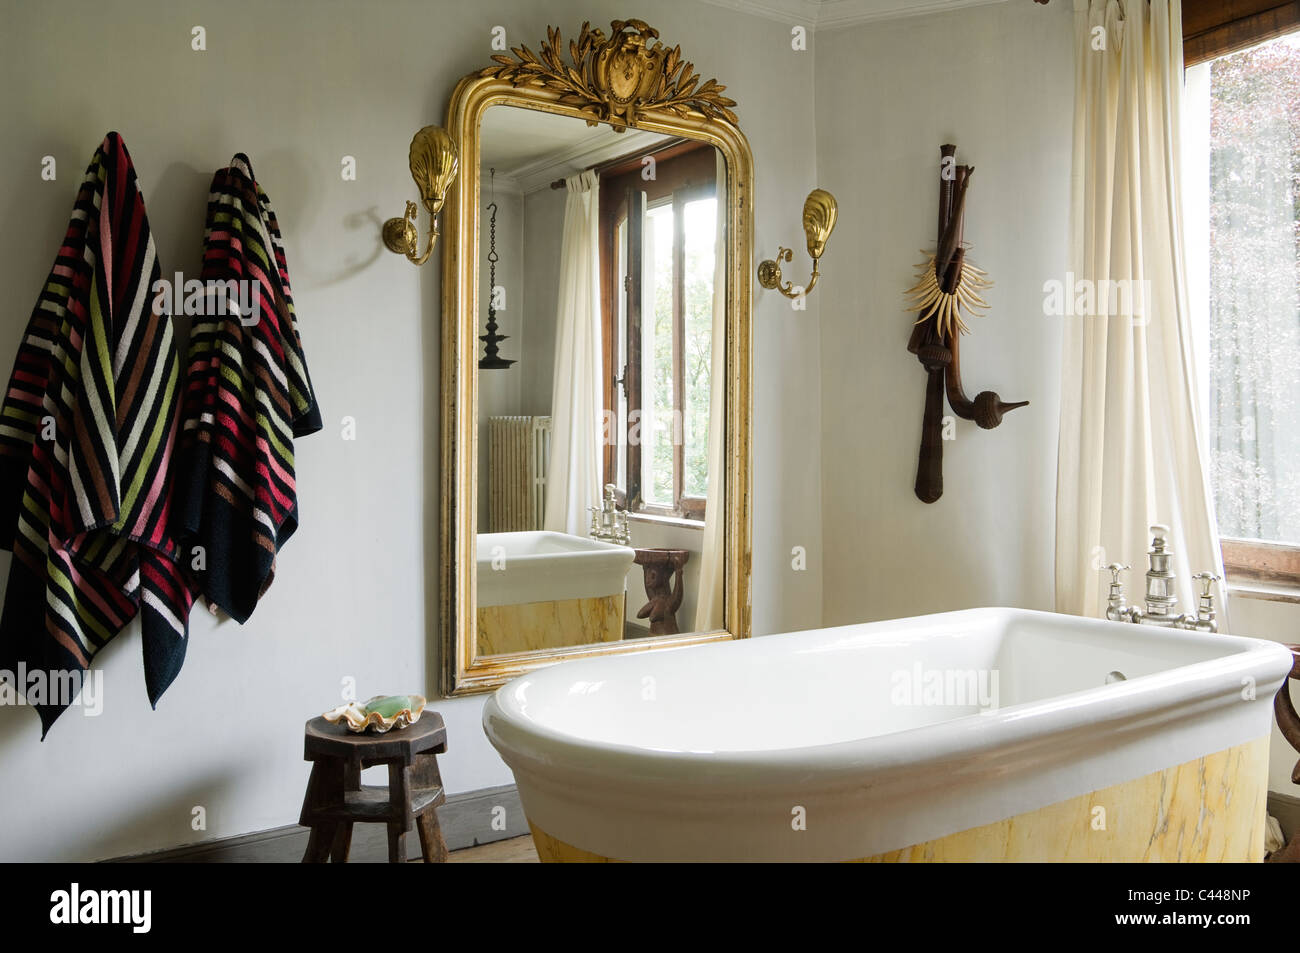 Gilt Framed Stockfotos & Gilt Framed Bilder - Alamy